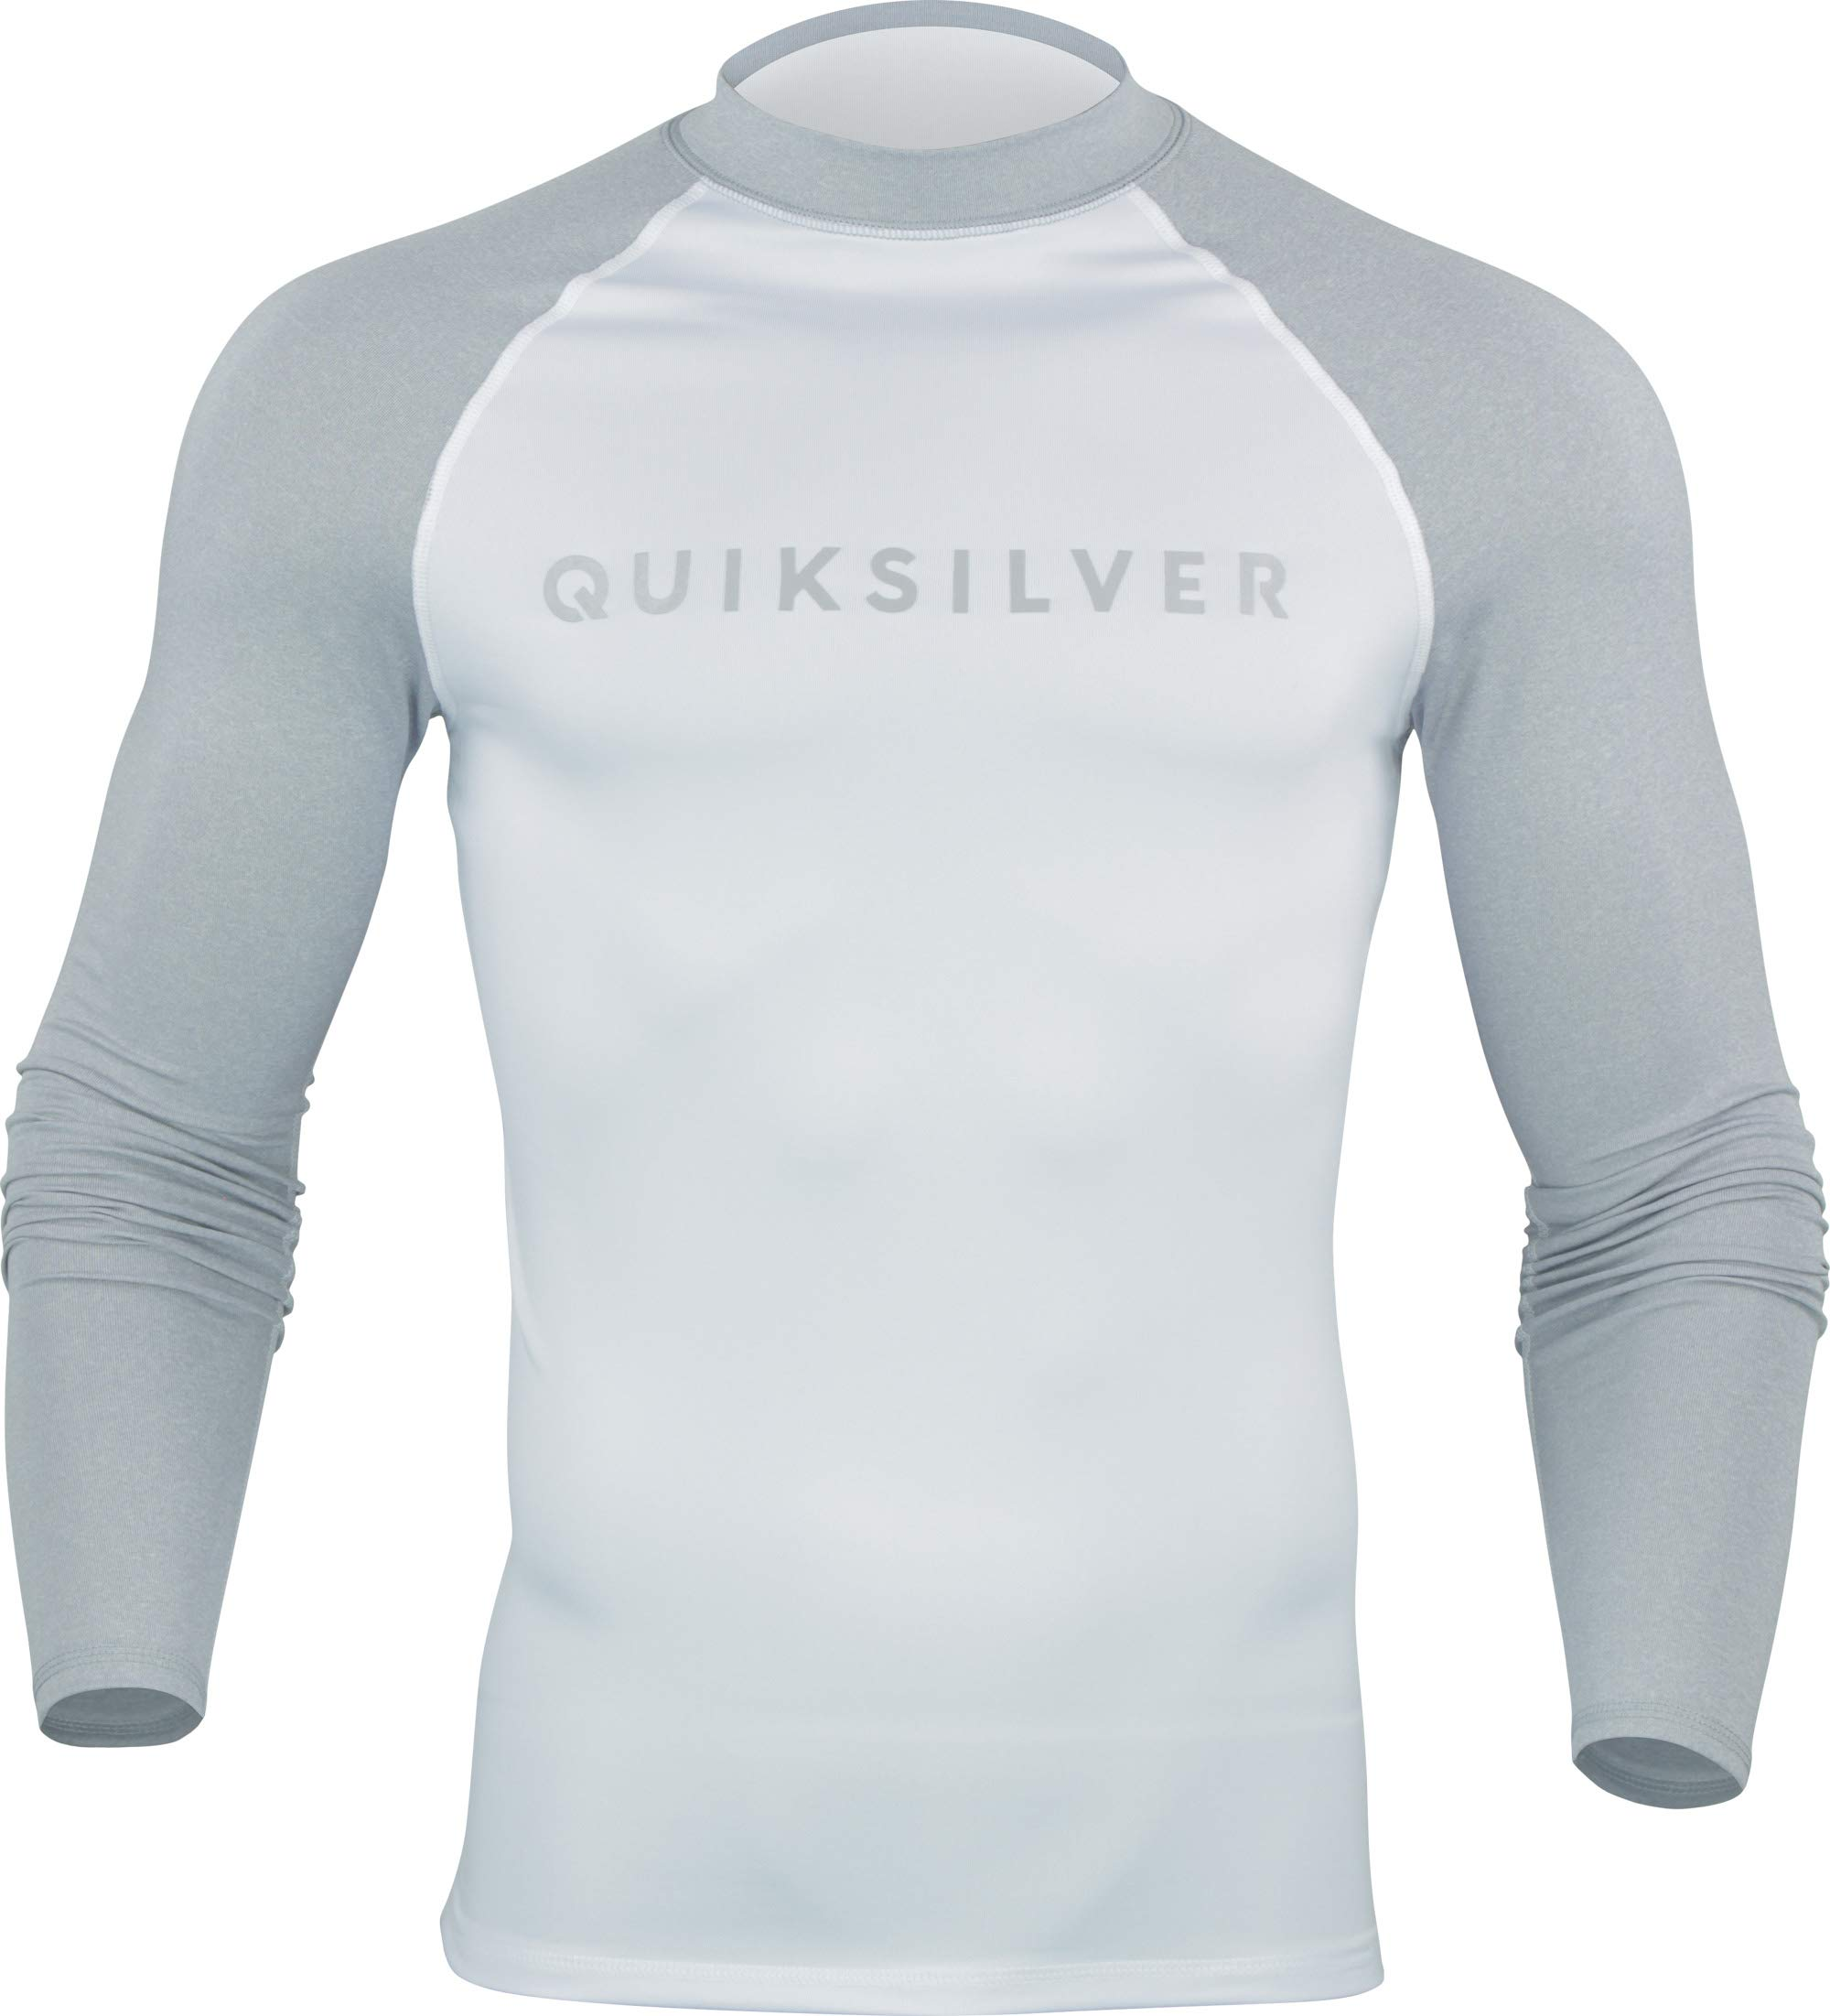 Quiksilver Always There Men's Long-Sleeve Rashguards - Light Grey Heather/Small by Quiksilver